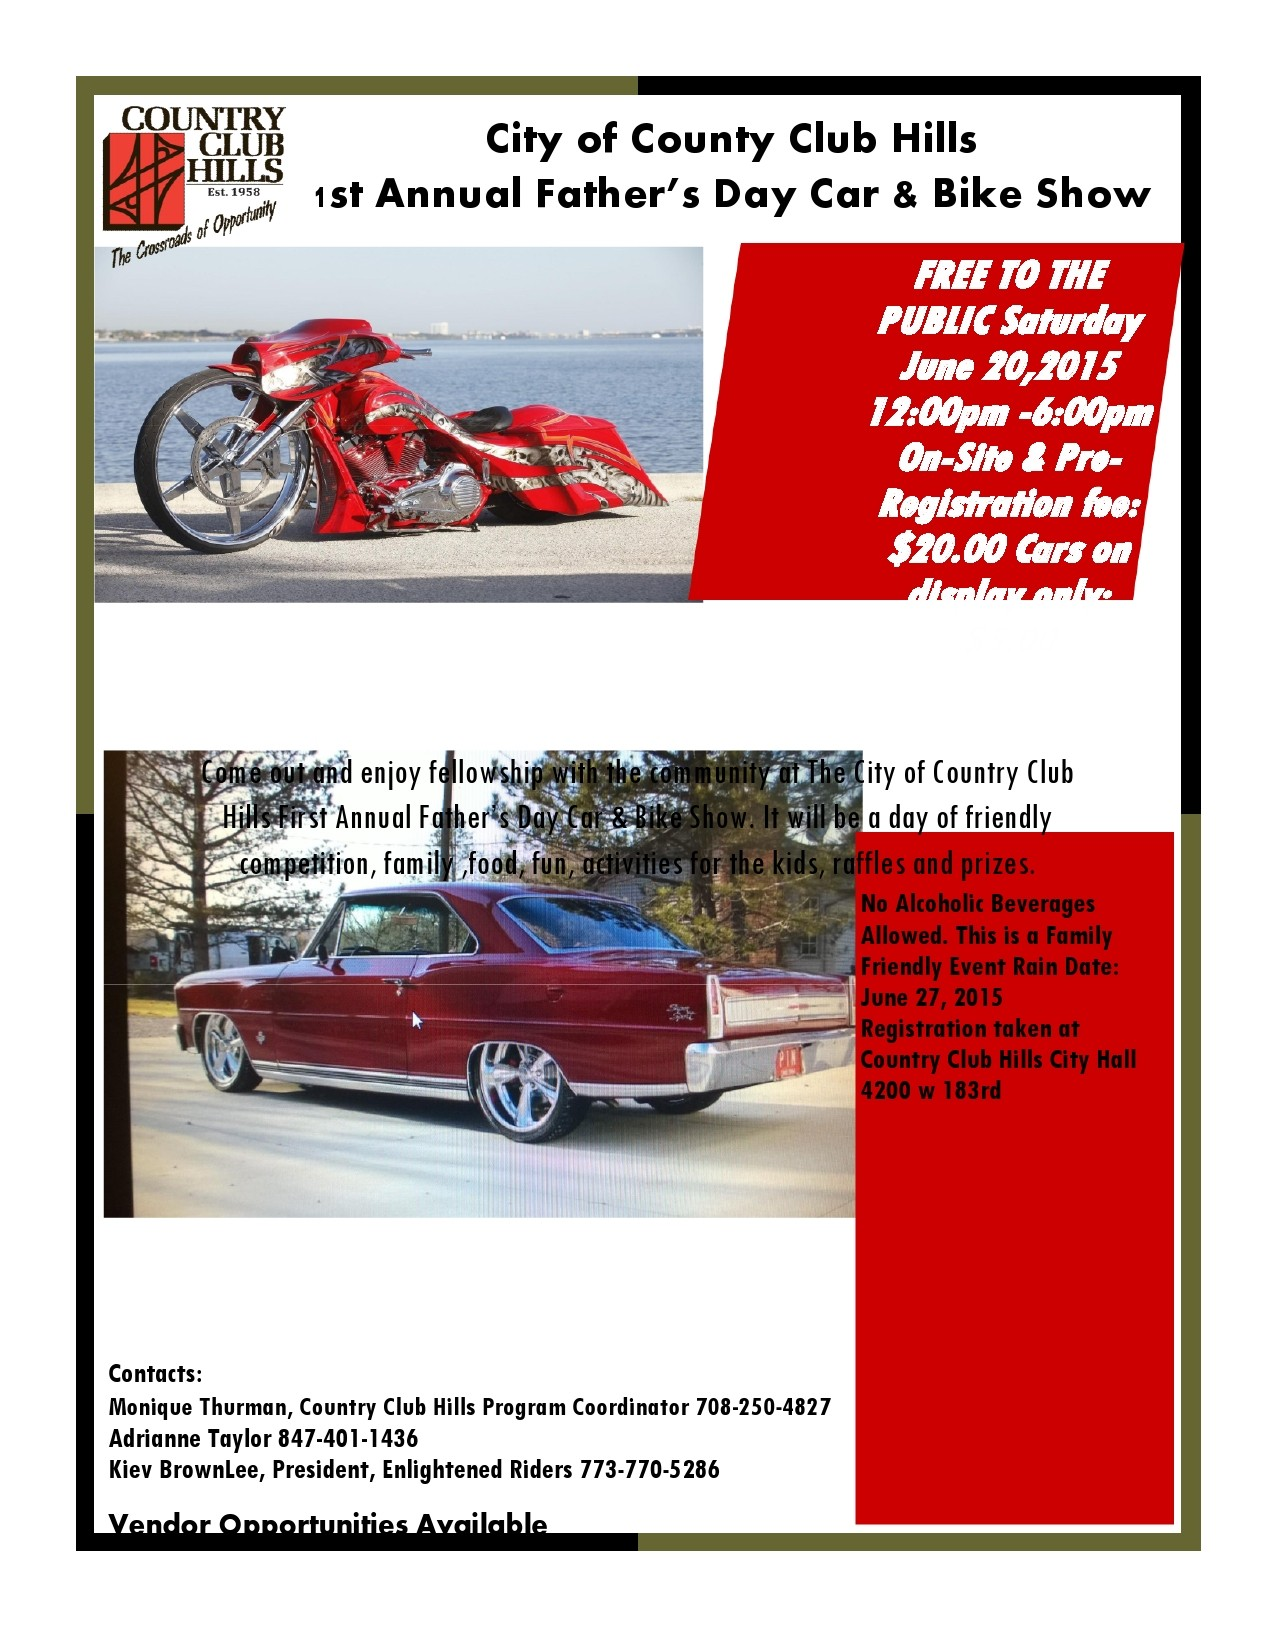 Free car show flyer 11